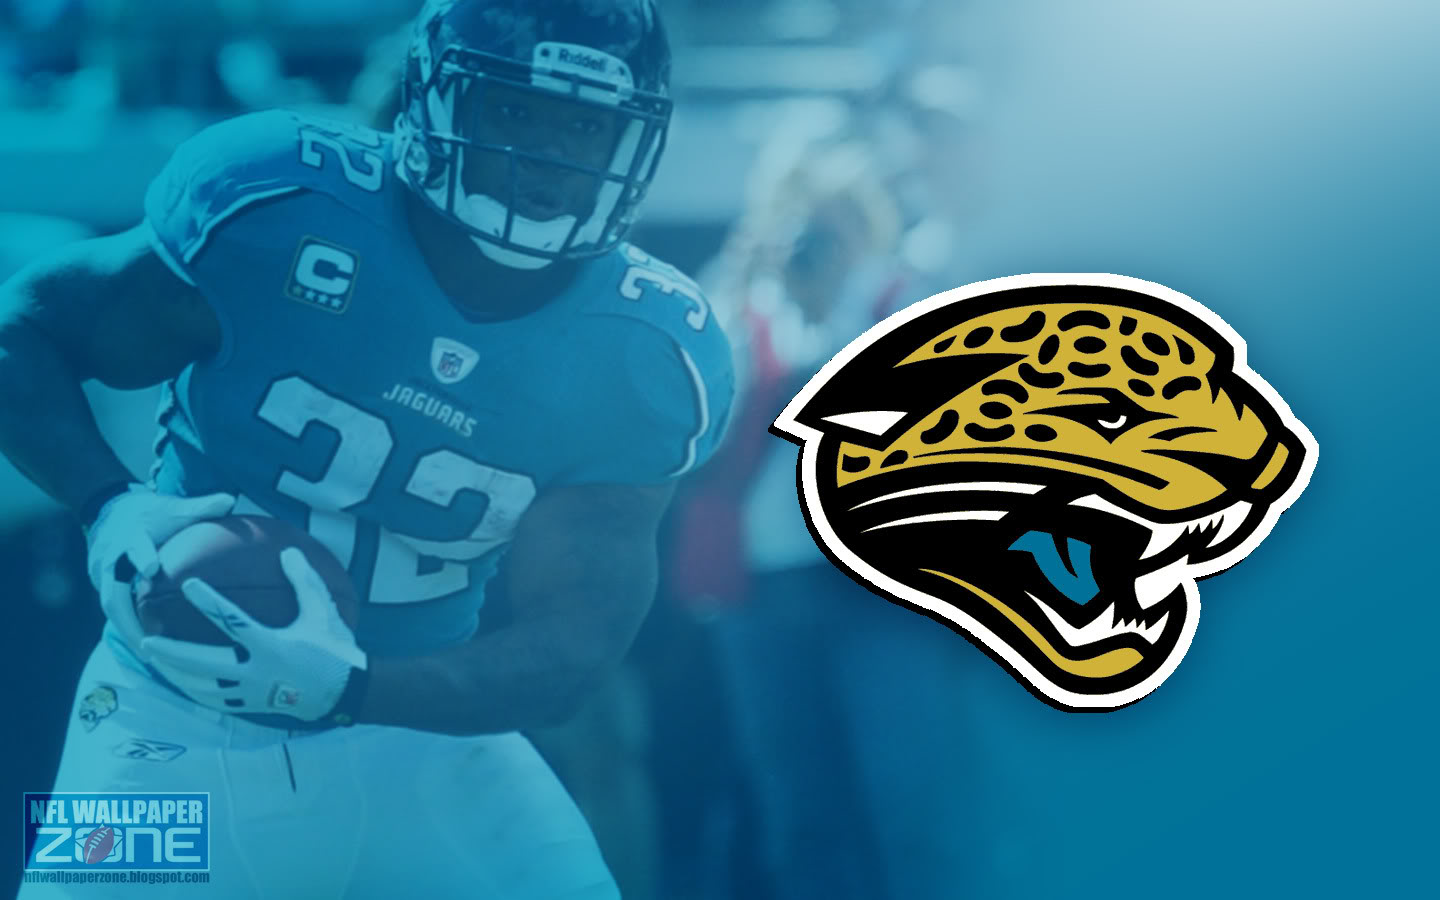 Wallpaper Zone Jacksonville Jaguars Wallpaper   Jaguars Logo Desktop 1440x900